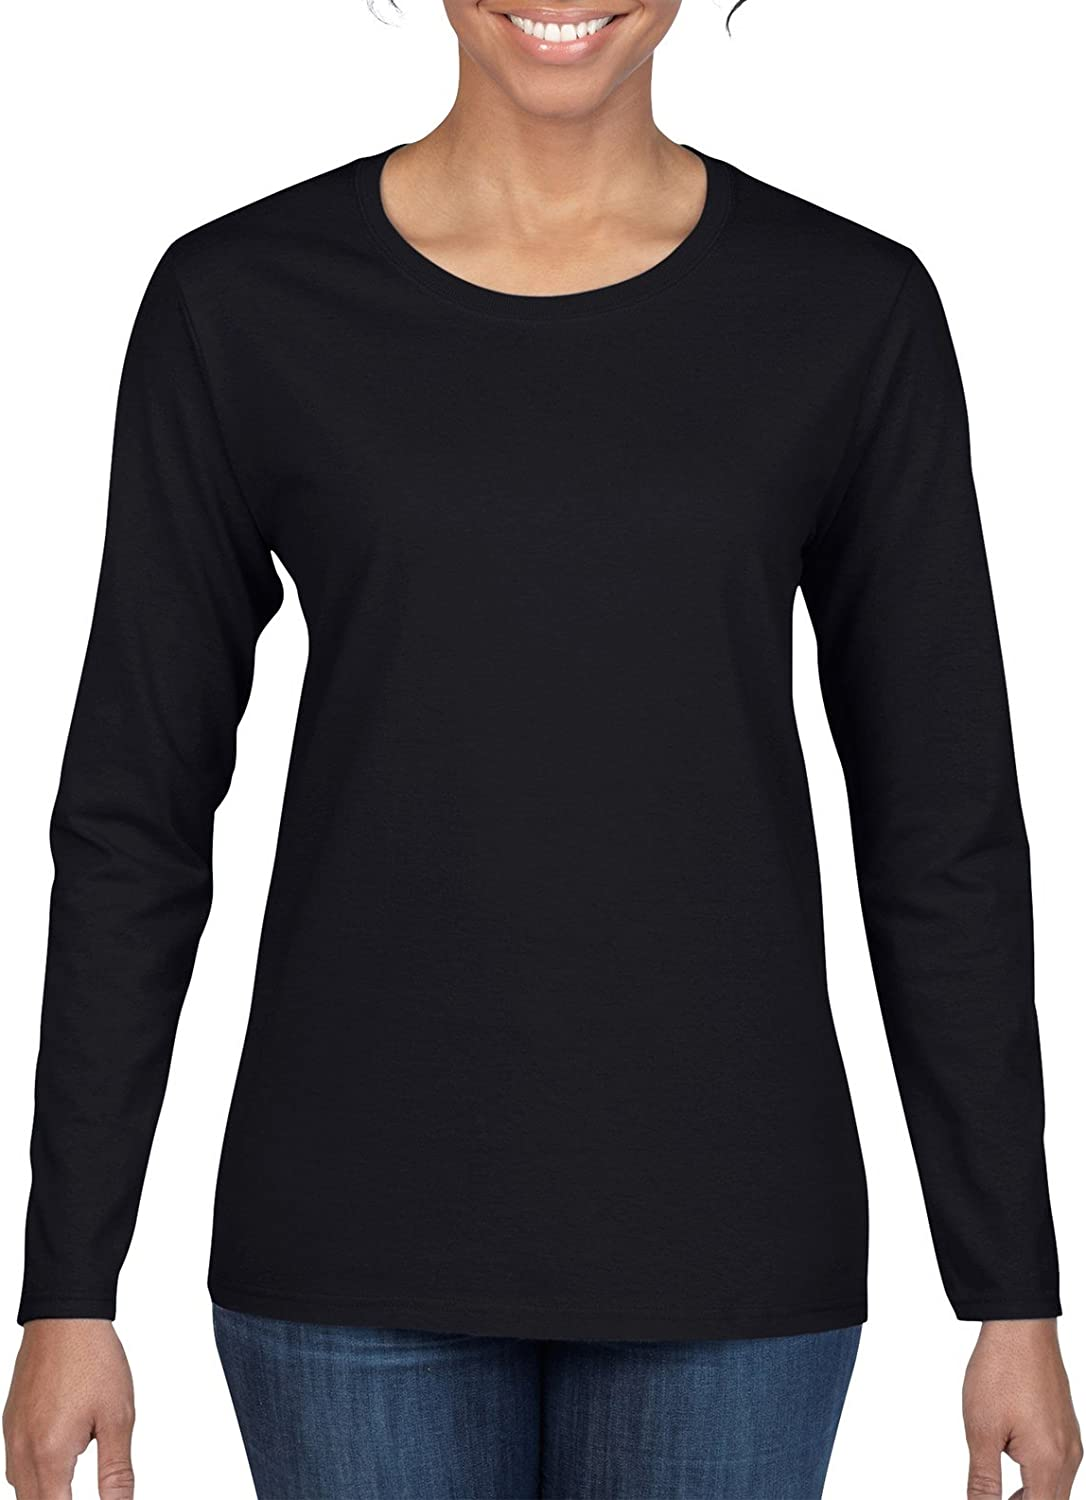 Hdaw Weapons of Choice Womens Long Sleeve T-Shirts Cotton Tops Tee